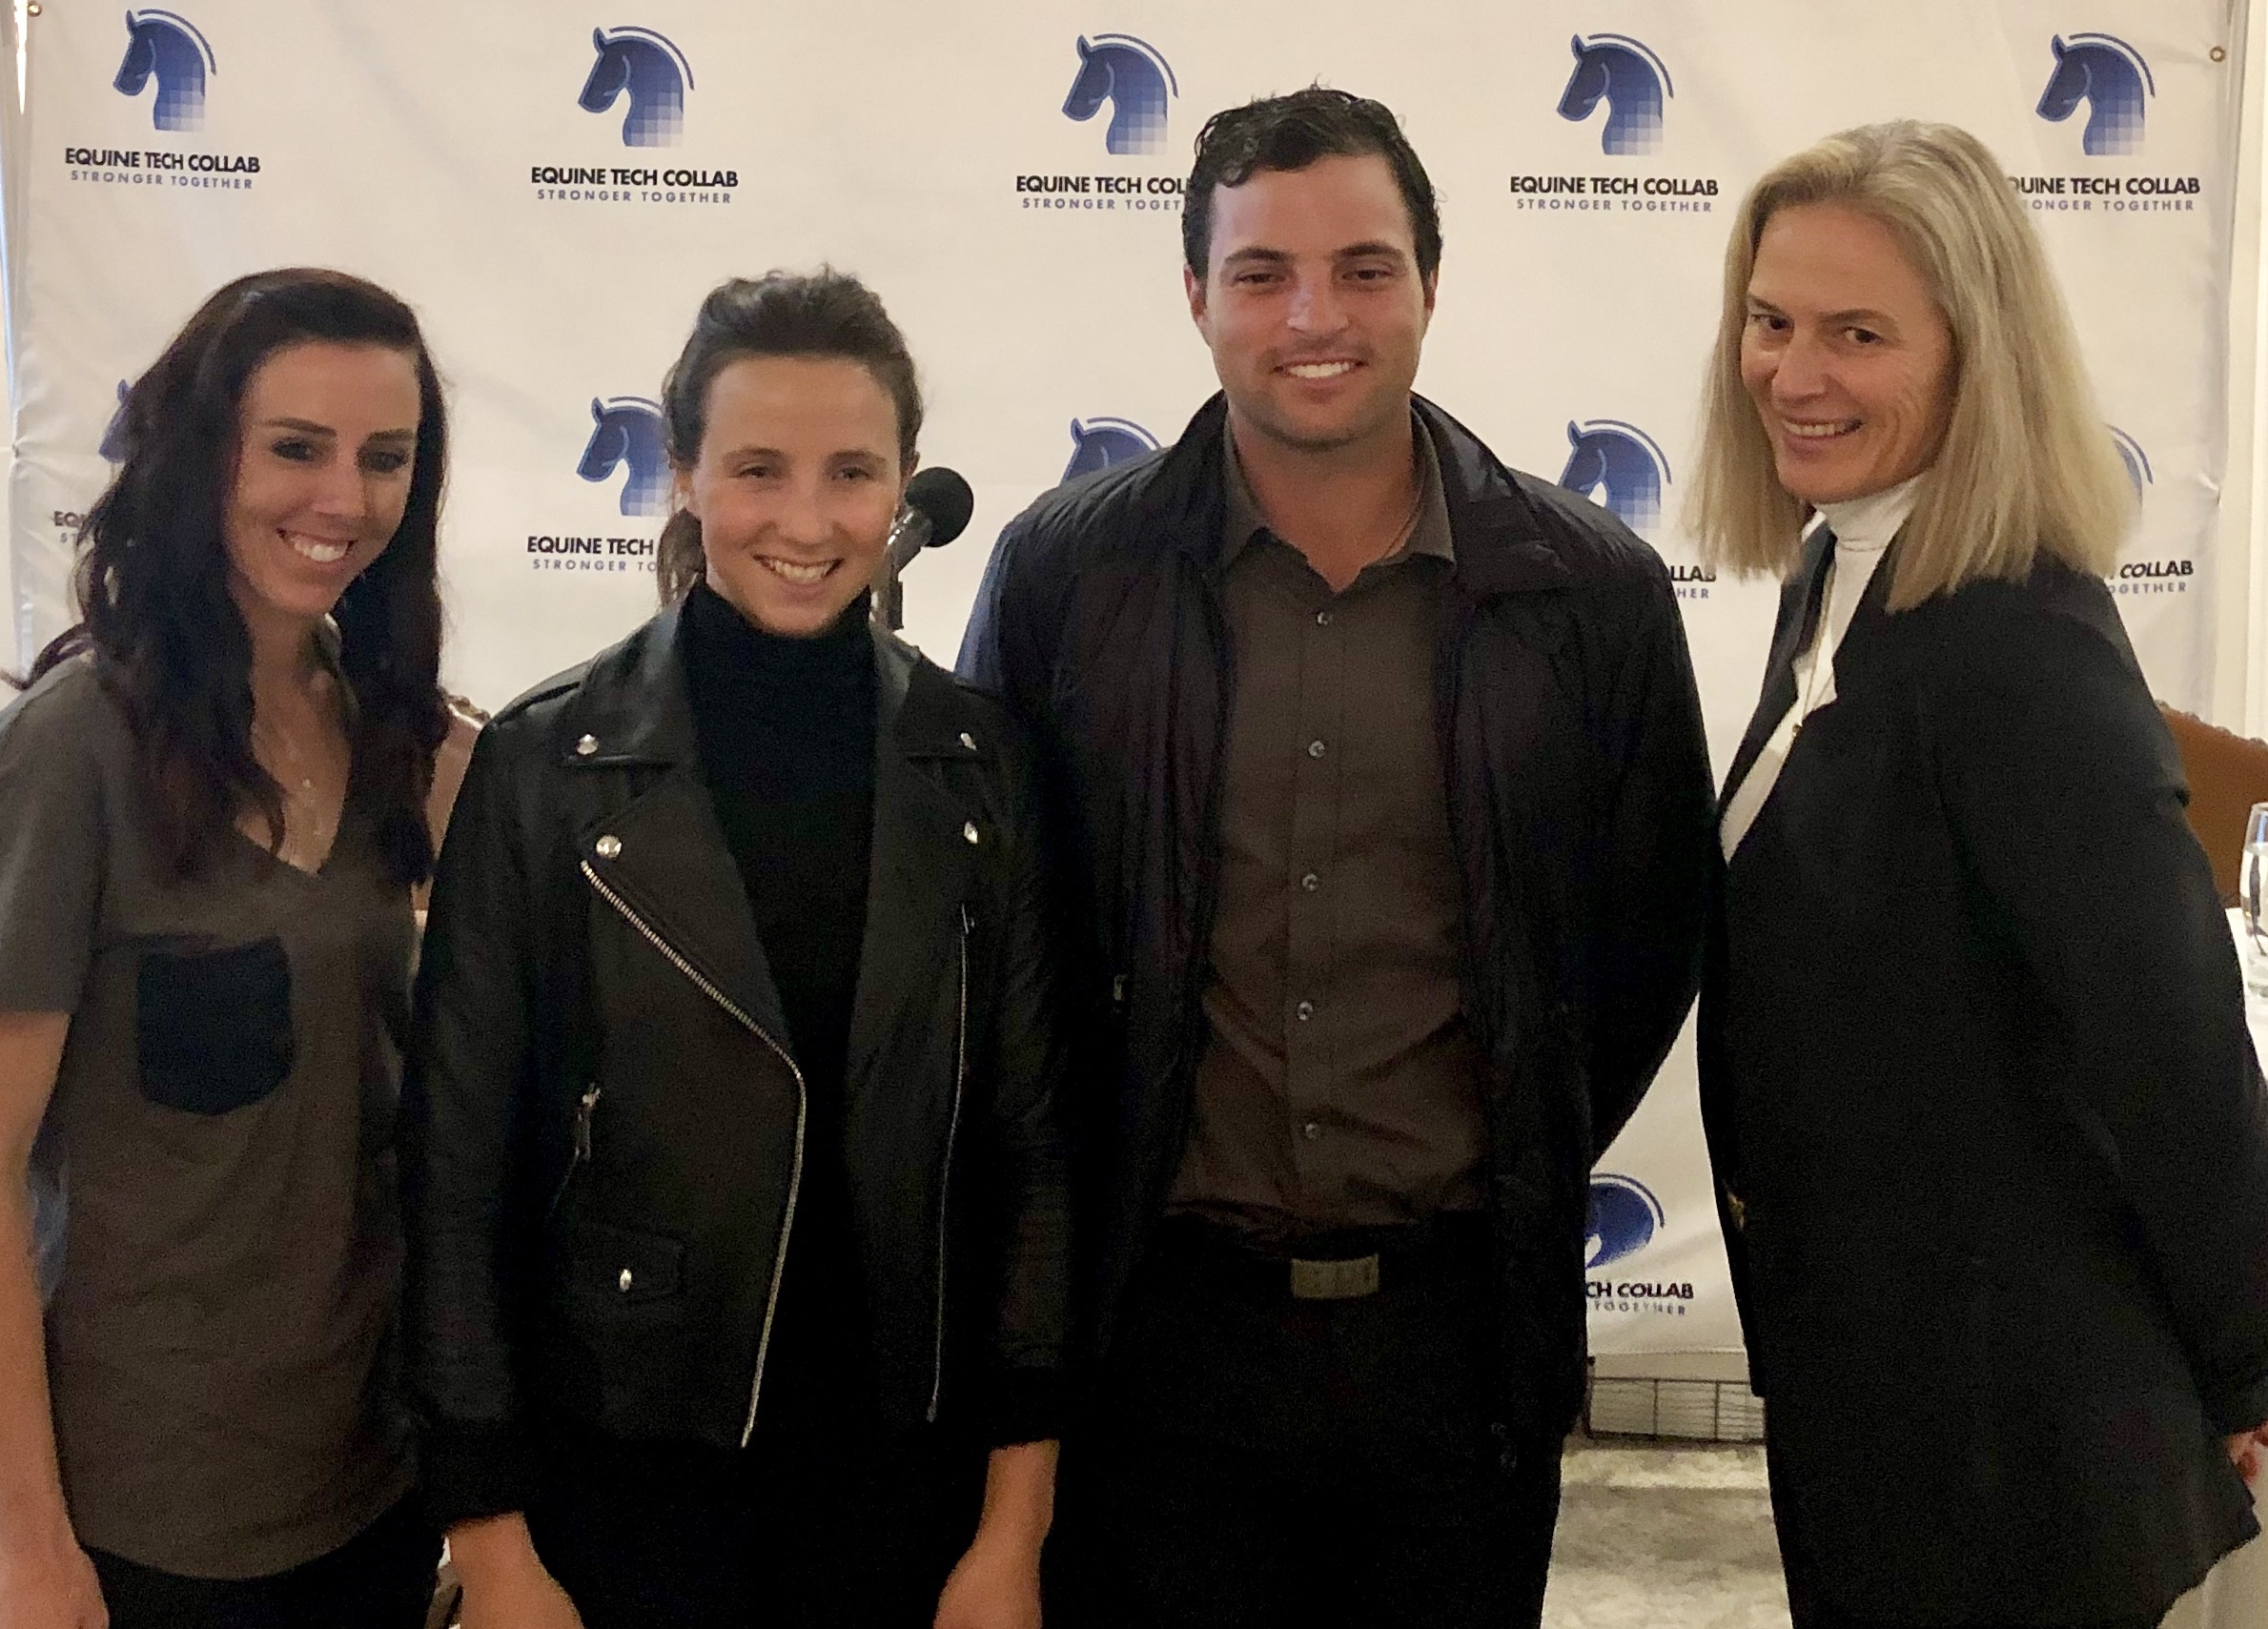 (From left to right)  Kasey Perry-Glass ,  Adrienne Sternlicht ,  Daniel Bluman  and  Tonya Johnston